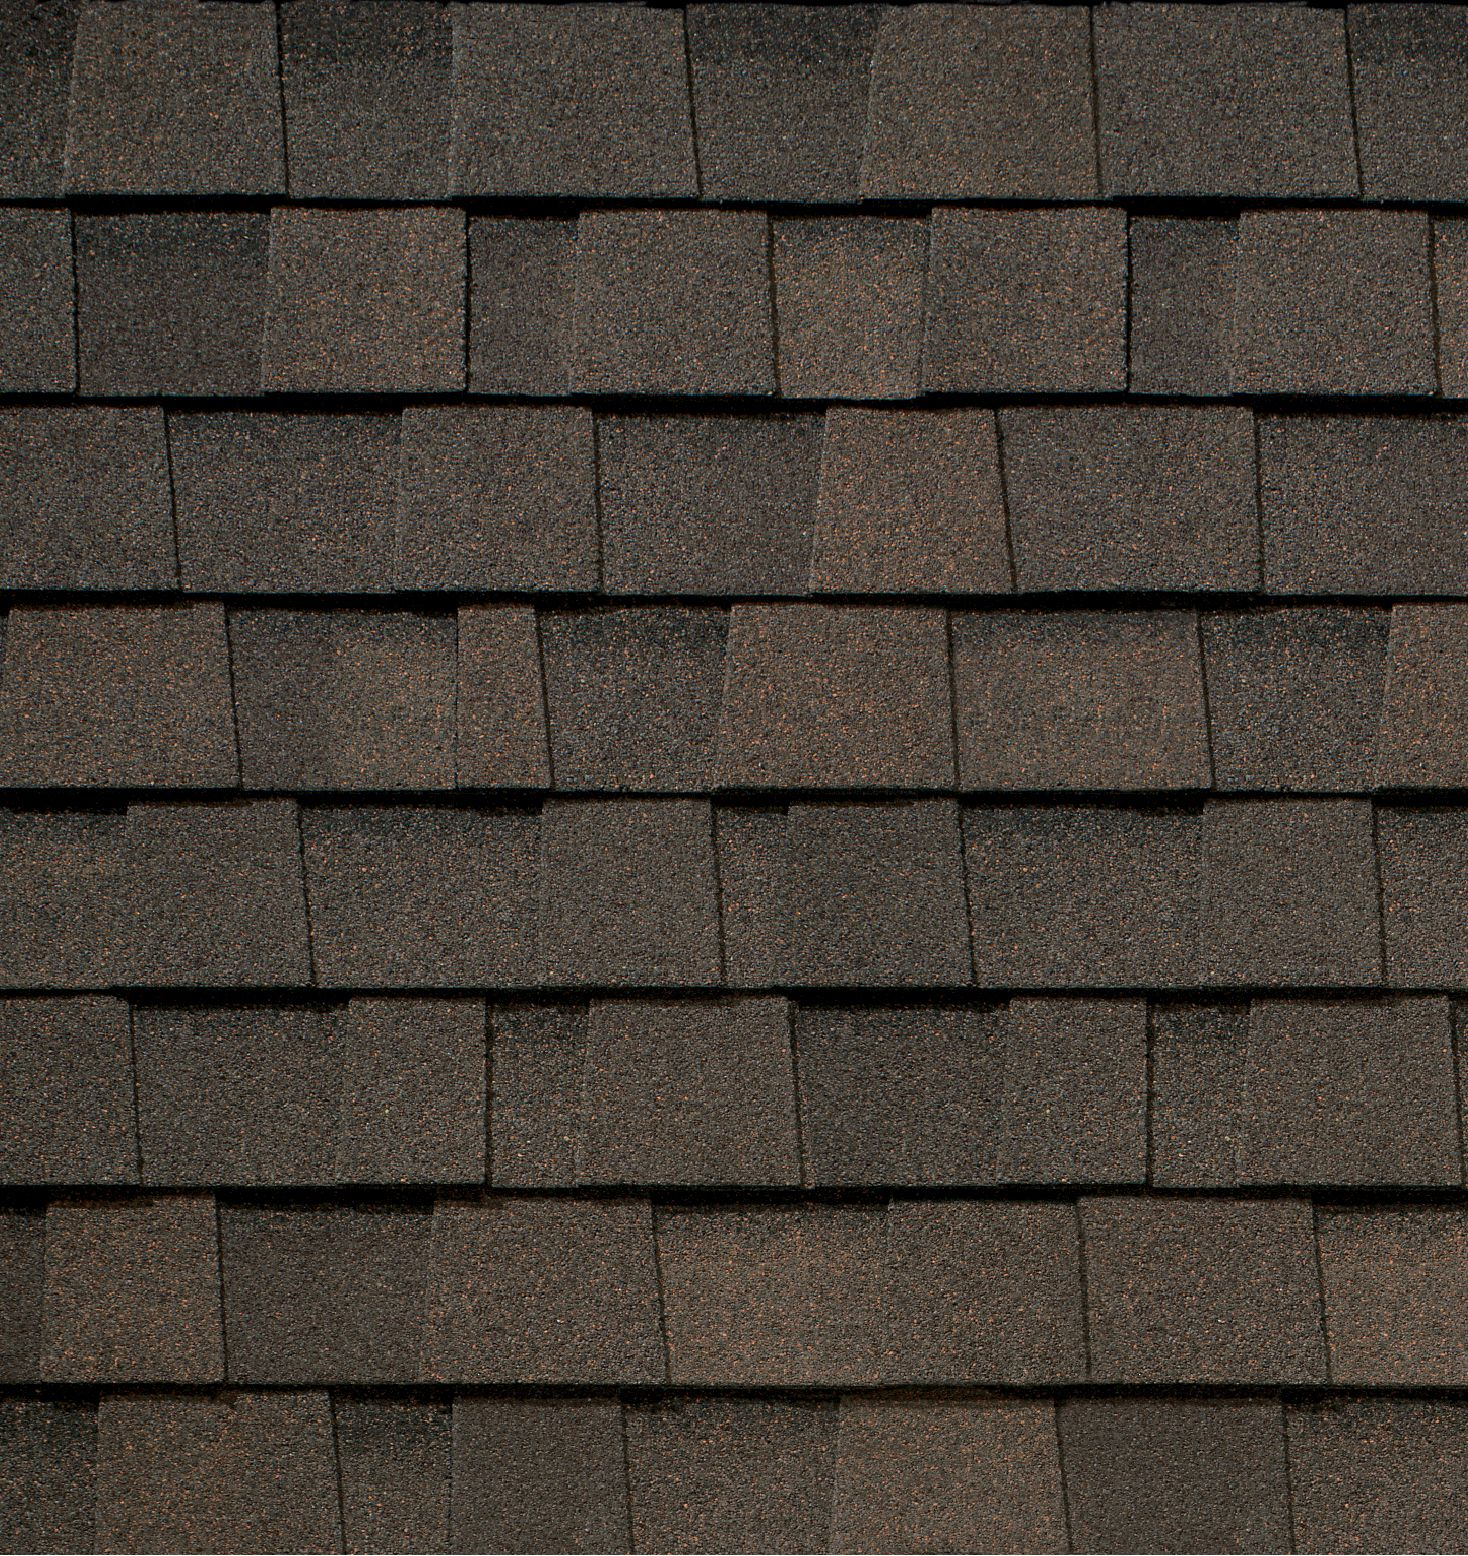 Tamko Heritage Series Classic Rustic Slate Frederick Jpg 1 468 1 556 Pixels Shingle Colors Traditional Exterior Roofing